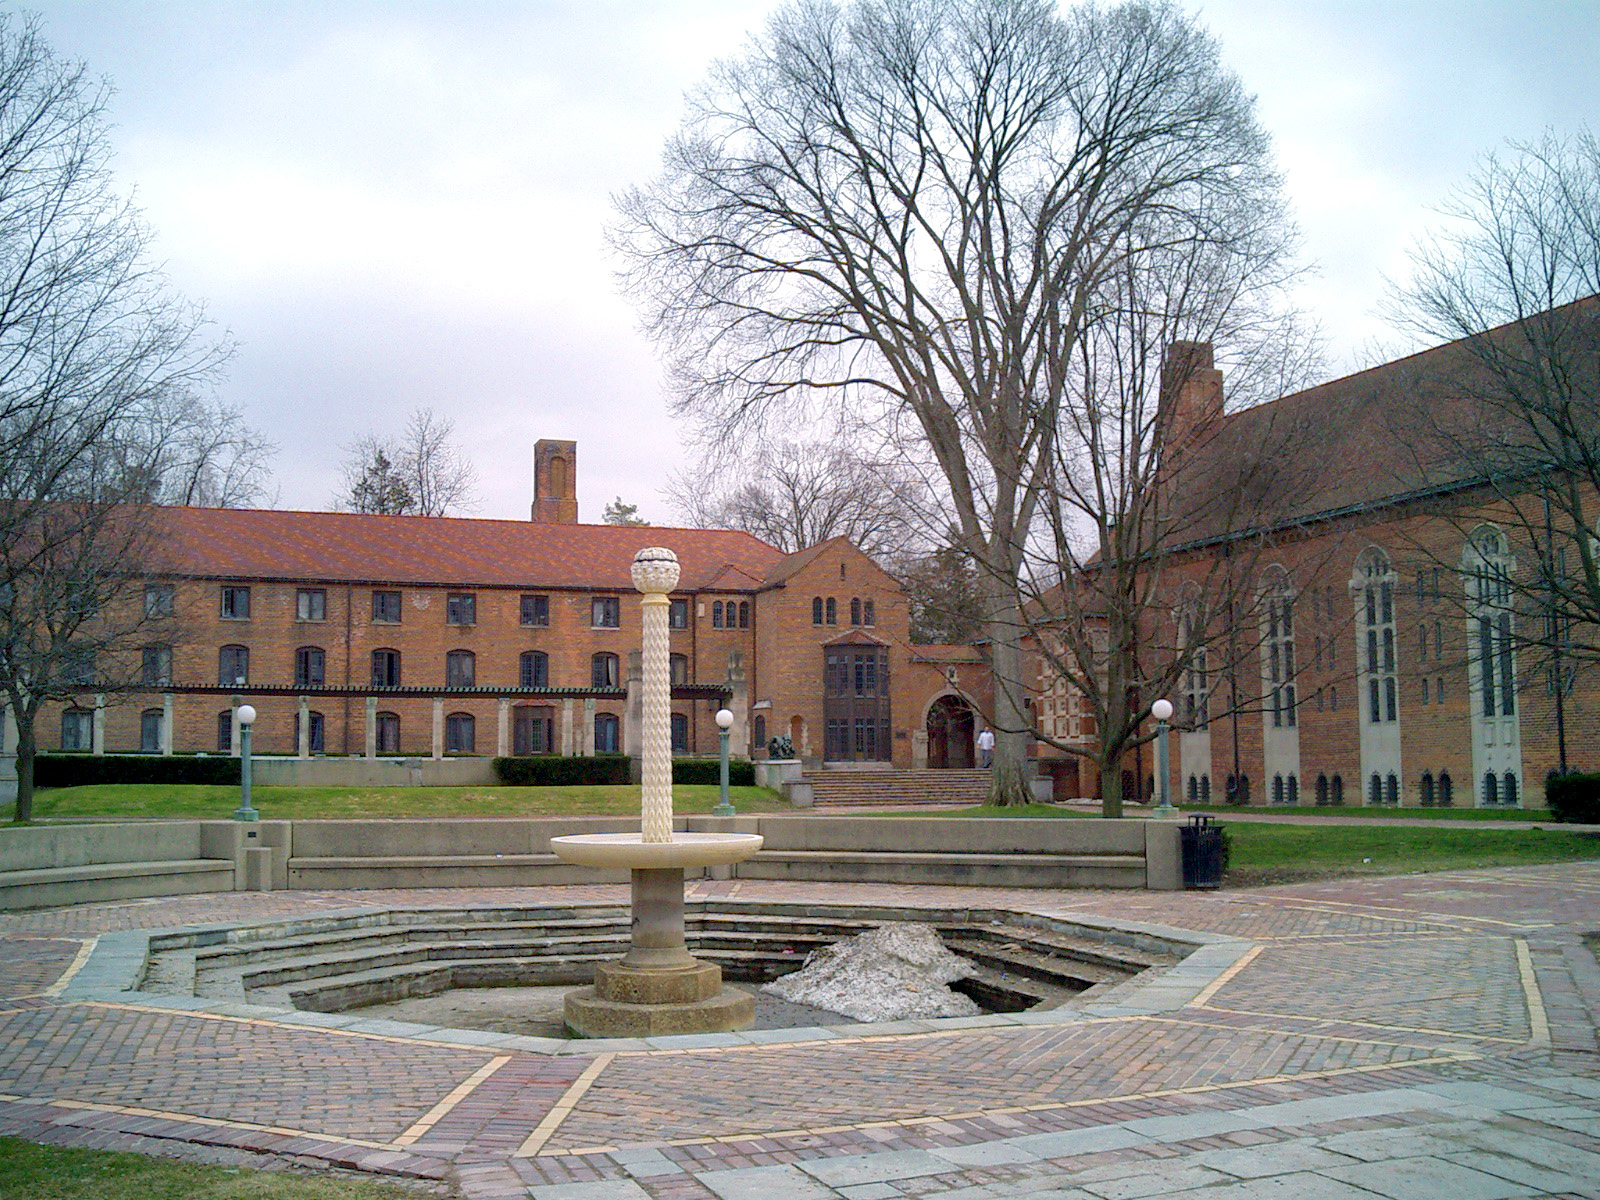 Several three-story brick buildings surrounding a large courtyard with fountain